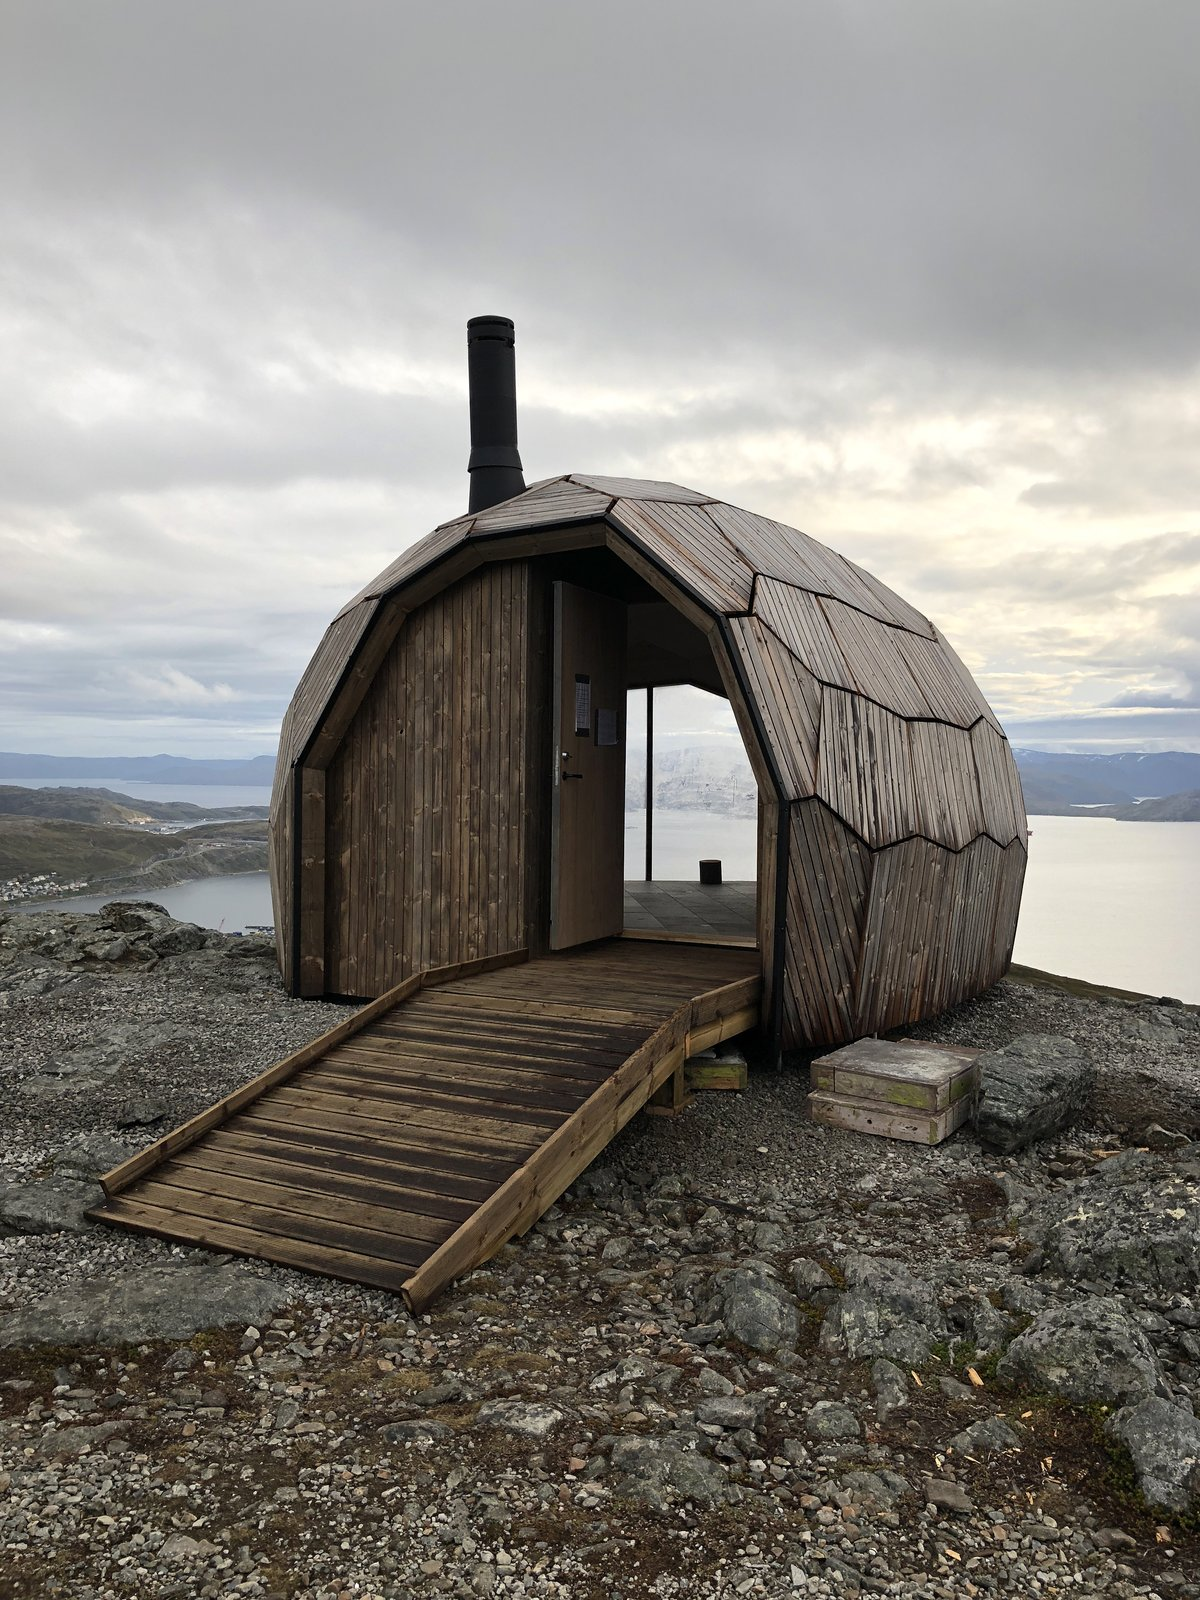 Simply appointed, the Hammerfest Cabin provides the basic need of shelter in an innovative geometric shell.